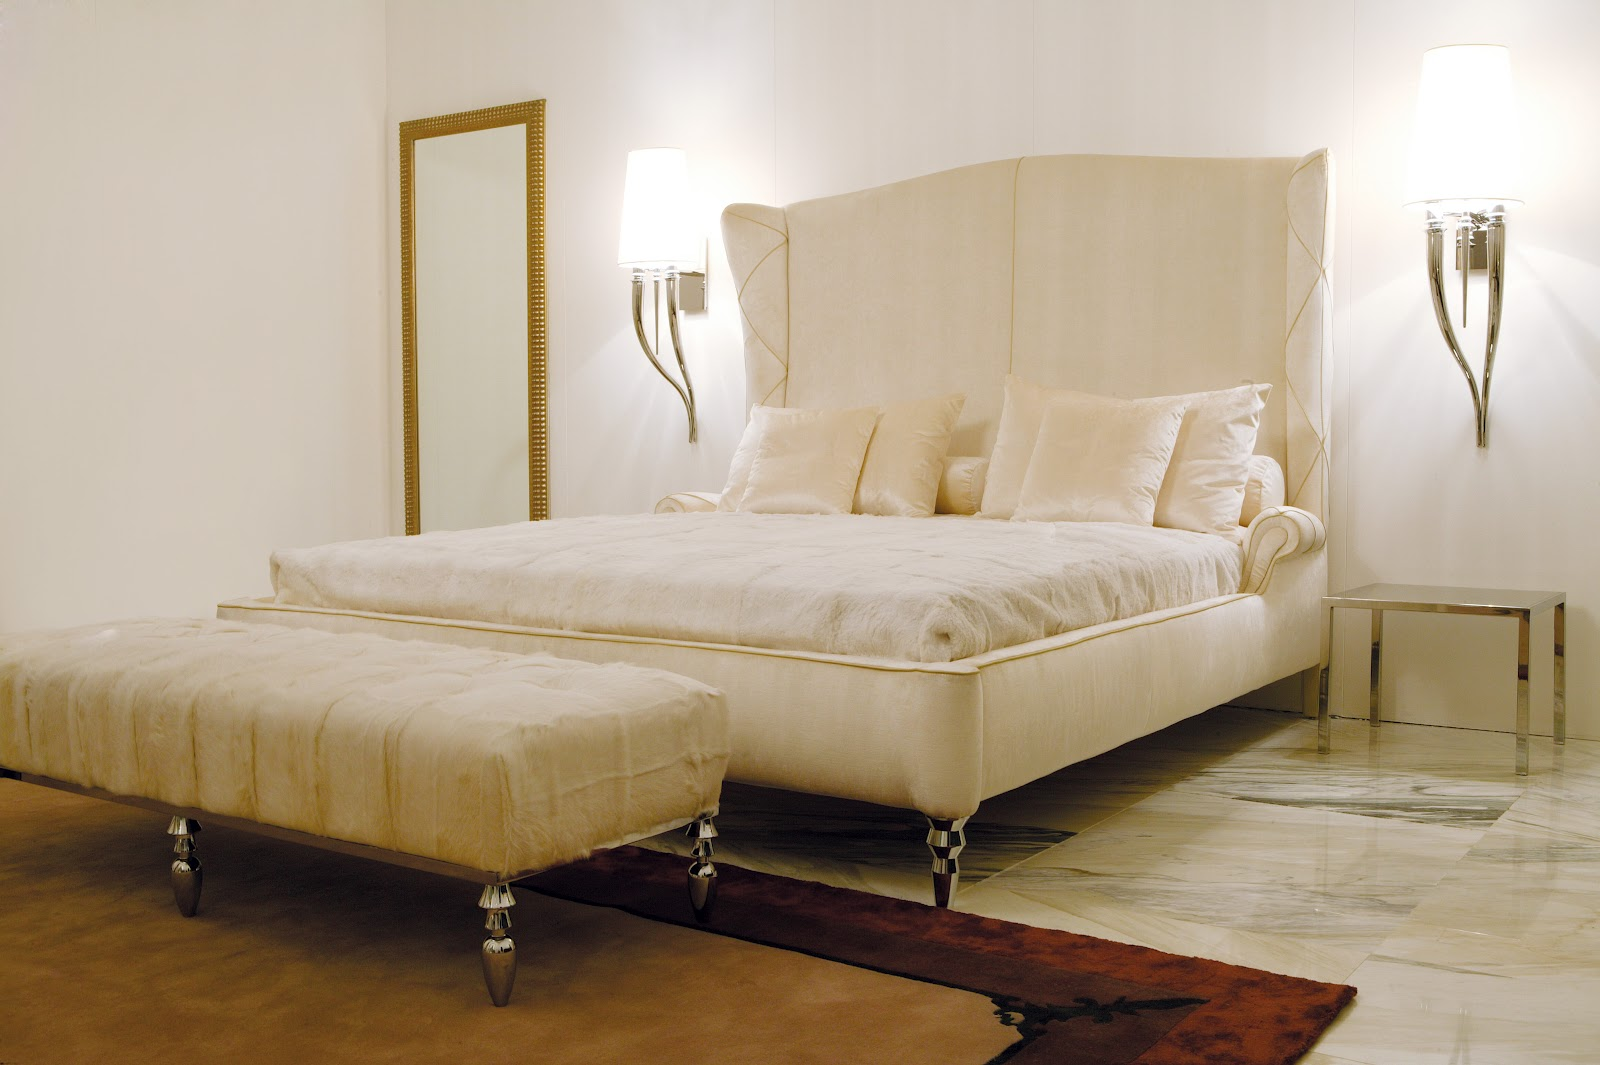 ALL ABOUT FURNITURE MOST EXPENSIVE BEDS BY SAKEEL AL HASSANA